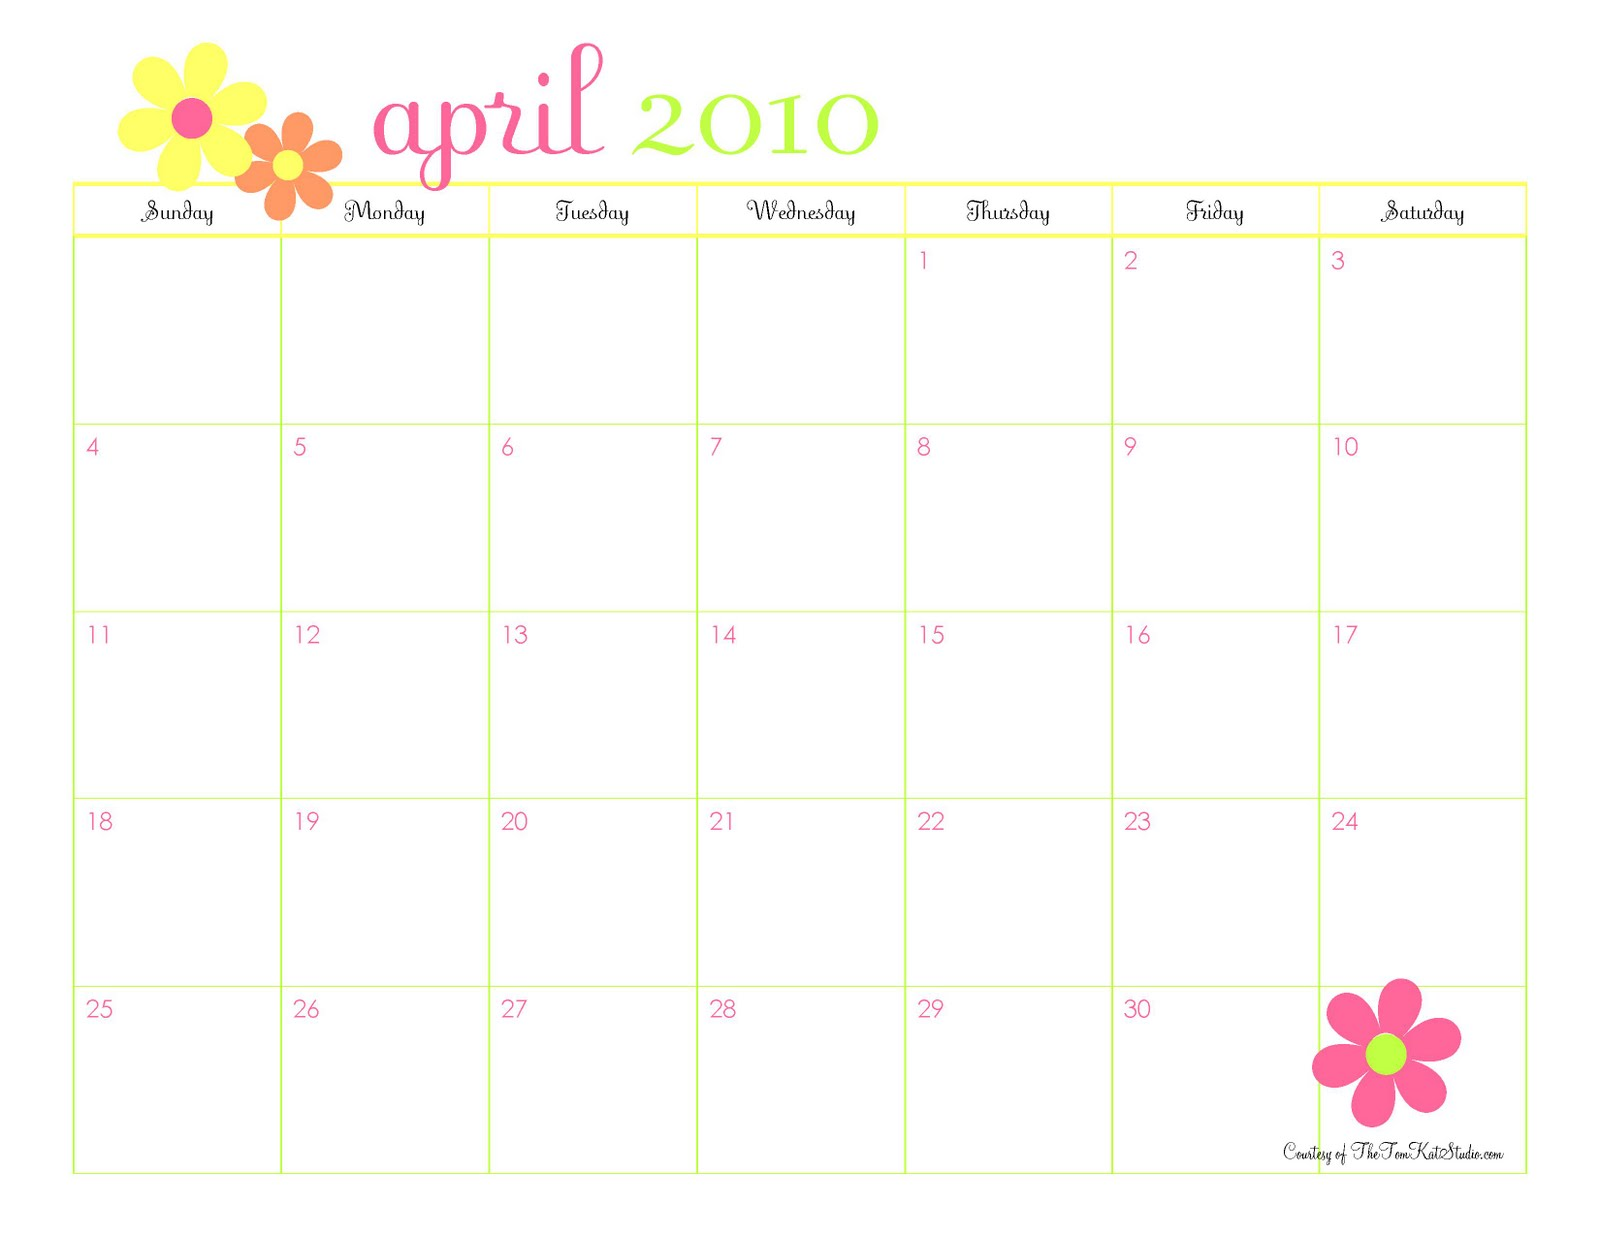 Qt Weekly Calendar : April calendar pictures cliparts